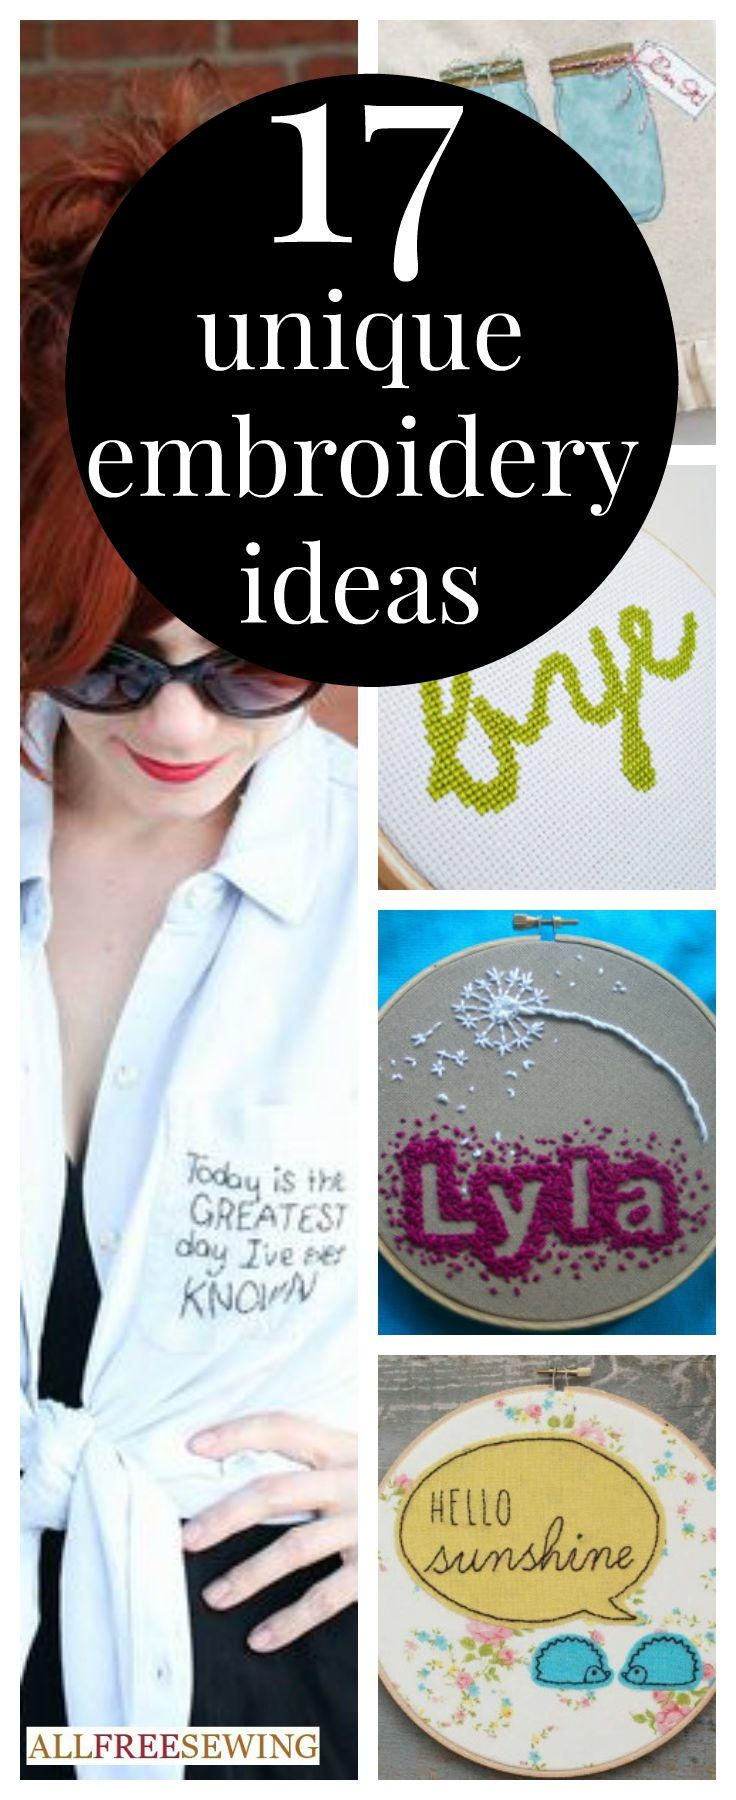 15 Free Embroidery Patterns And How To Embroider Tutorials